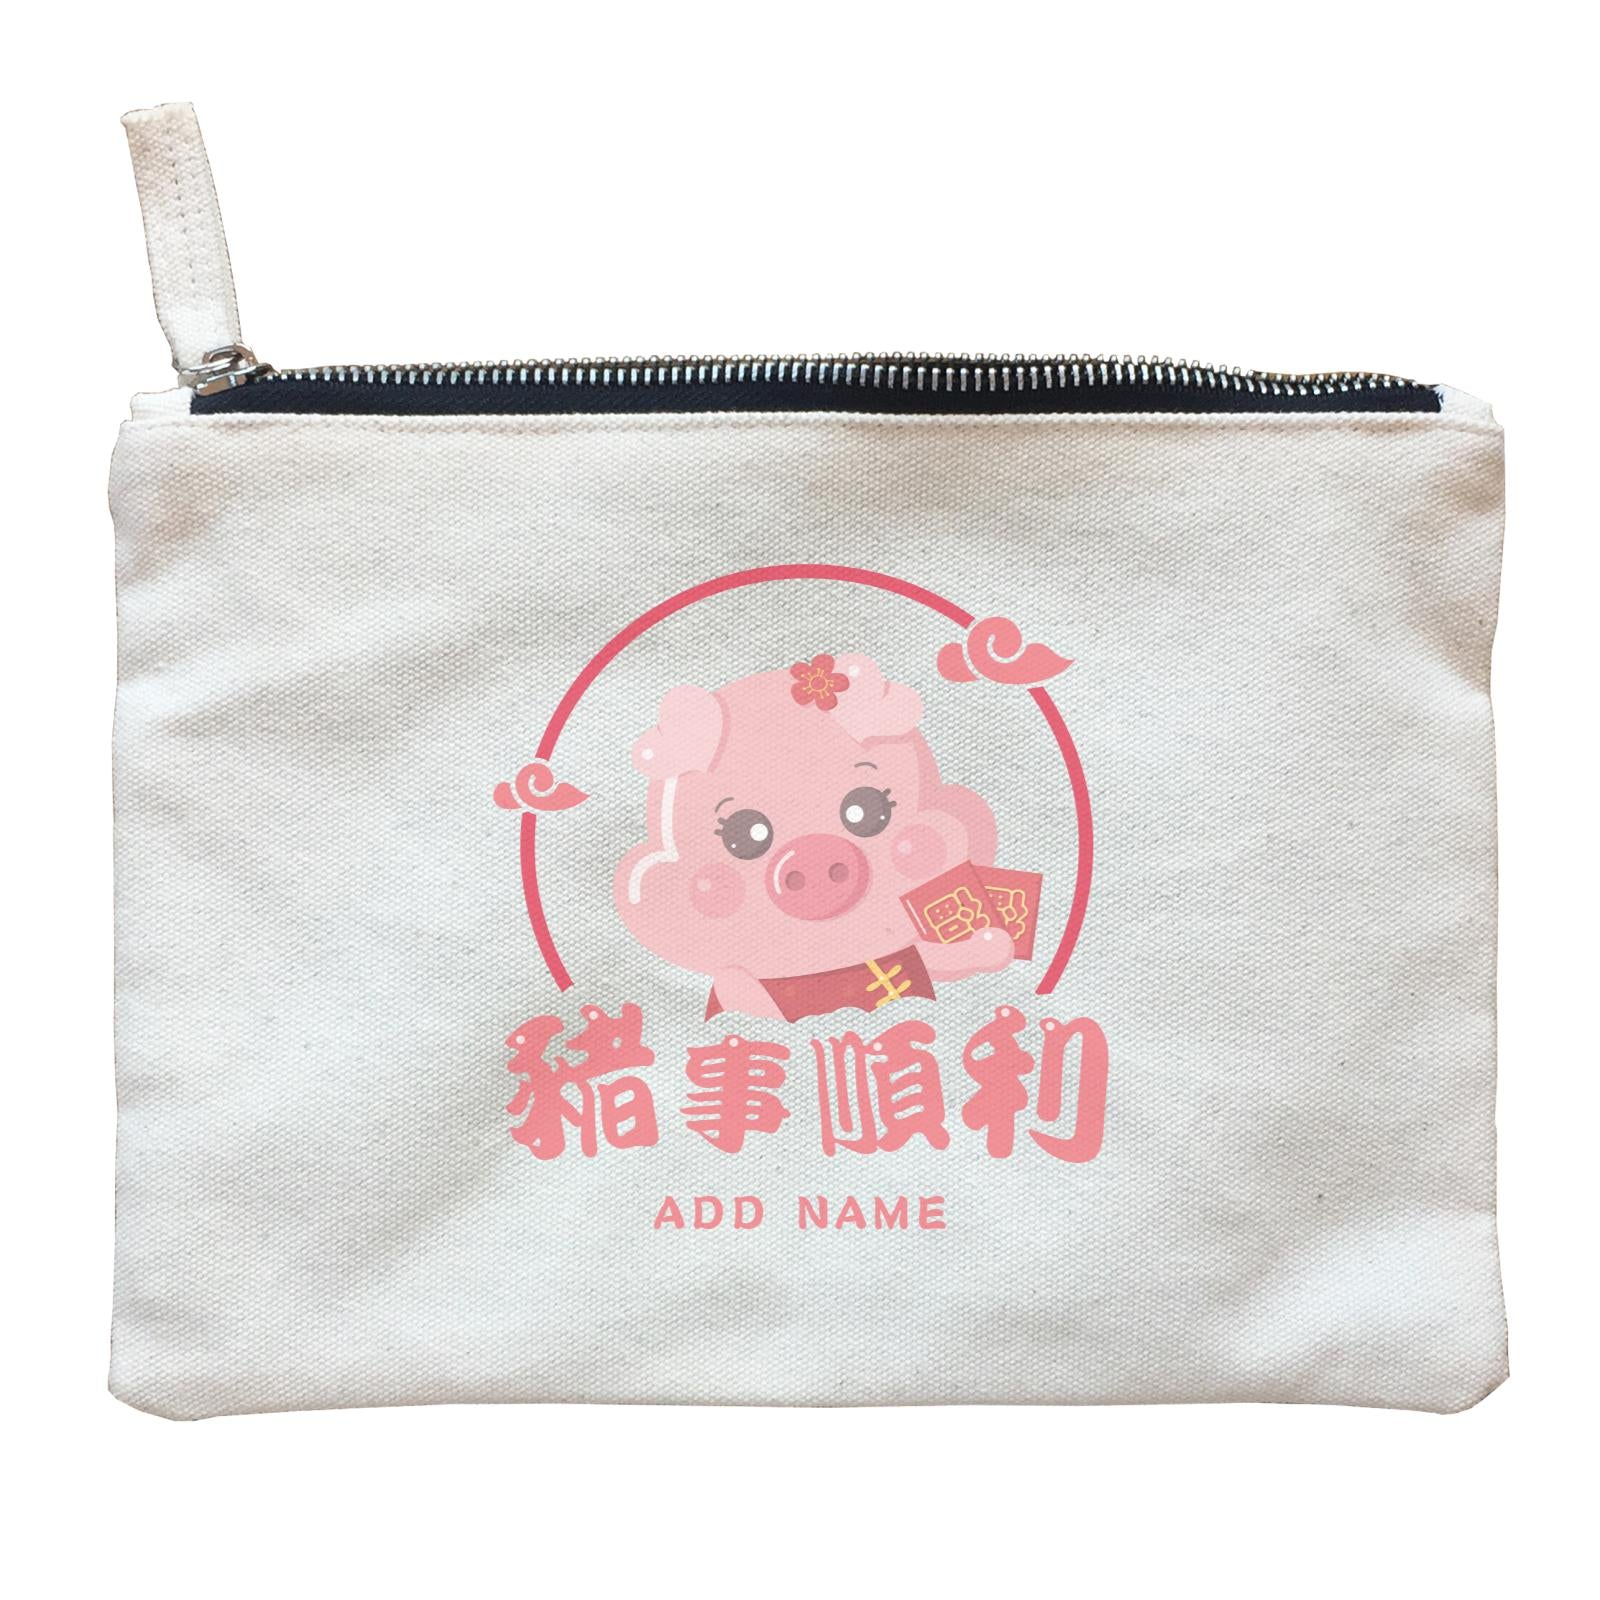 Chinese New Year Cute Pig Emblem Girl Accessories With Addname Zipper Pouch